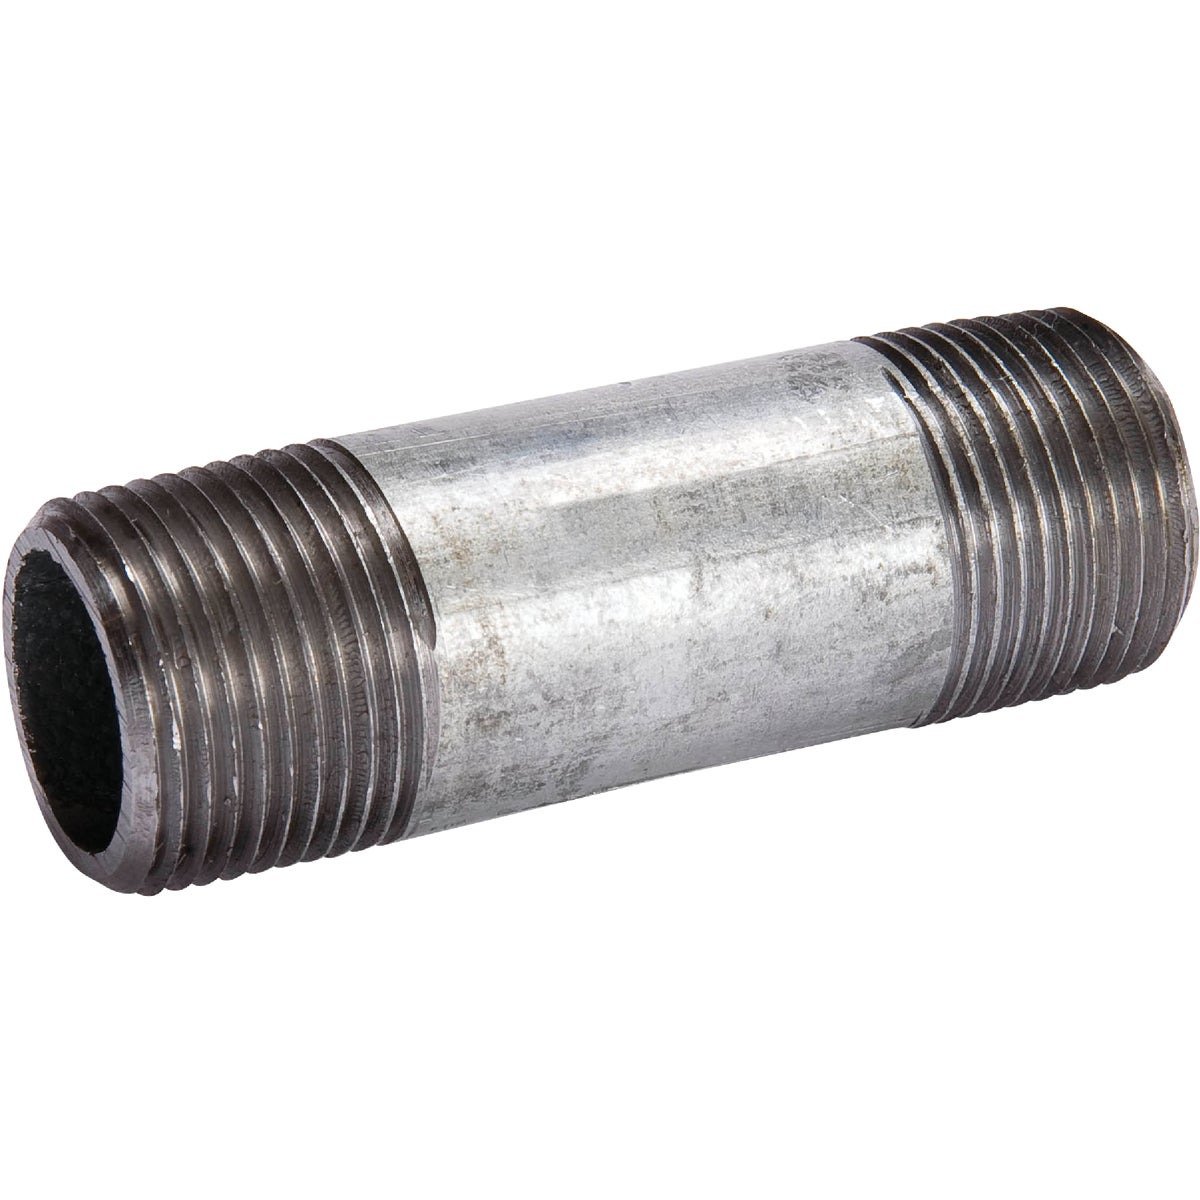 3/8X2-1/2 GALV NIPPLE - 10303 by Southland Pipe Nippl